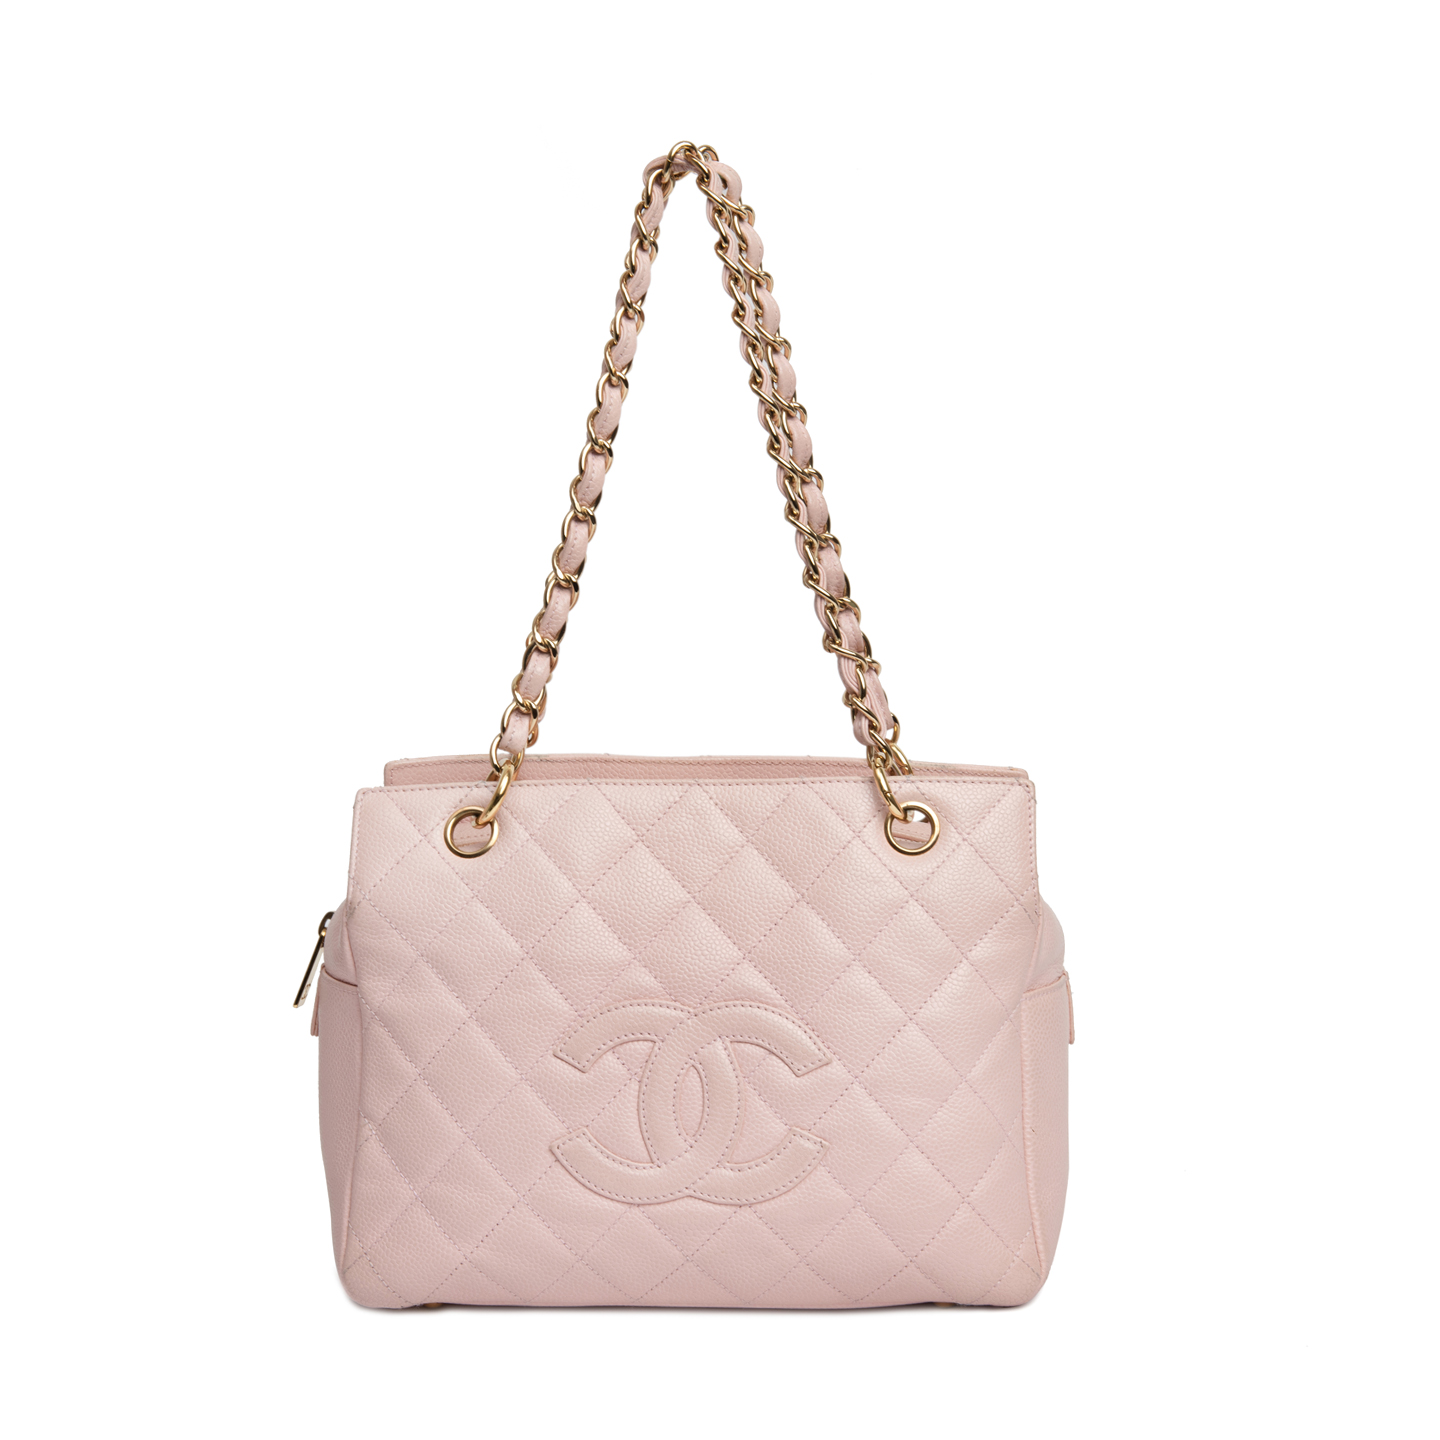 61c8a0d8008d Chanel Pink Quilted Caviar Leather Petite Timeless Shopping Tote Bag